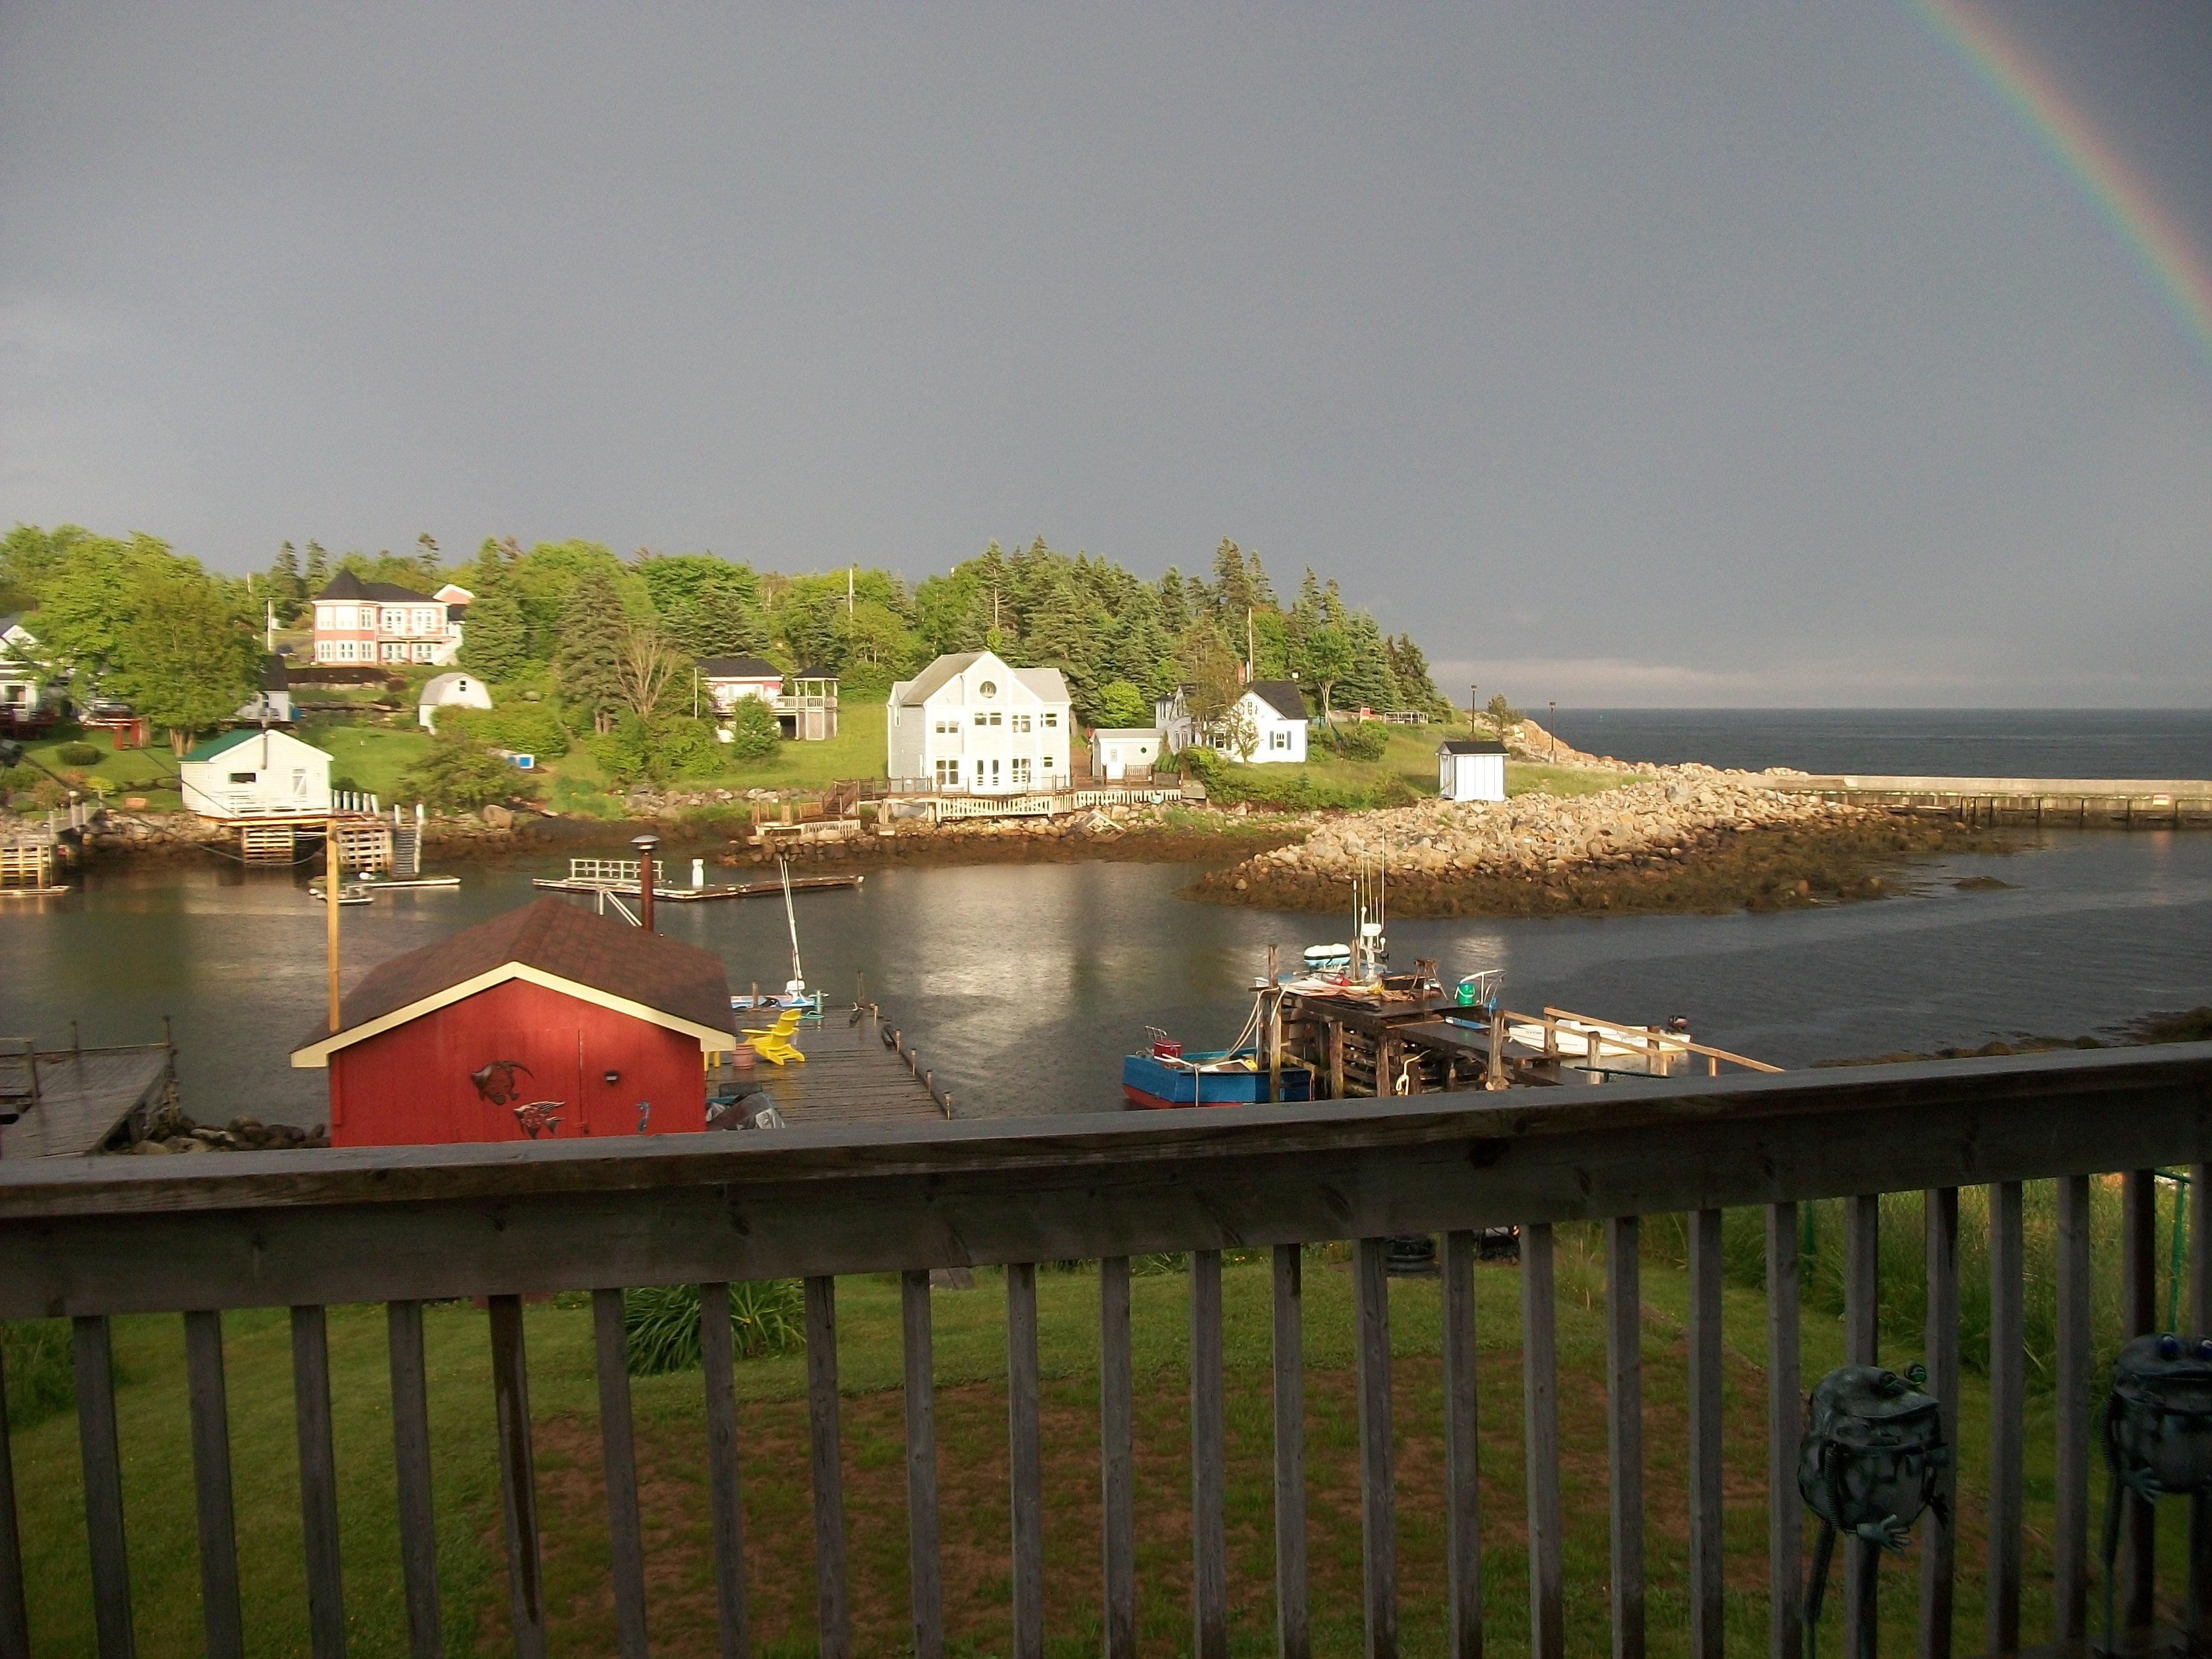 click to see a larger image of our fishing village...